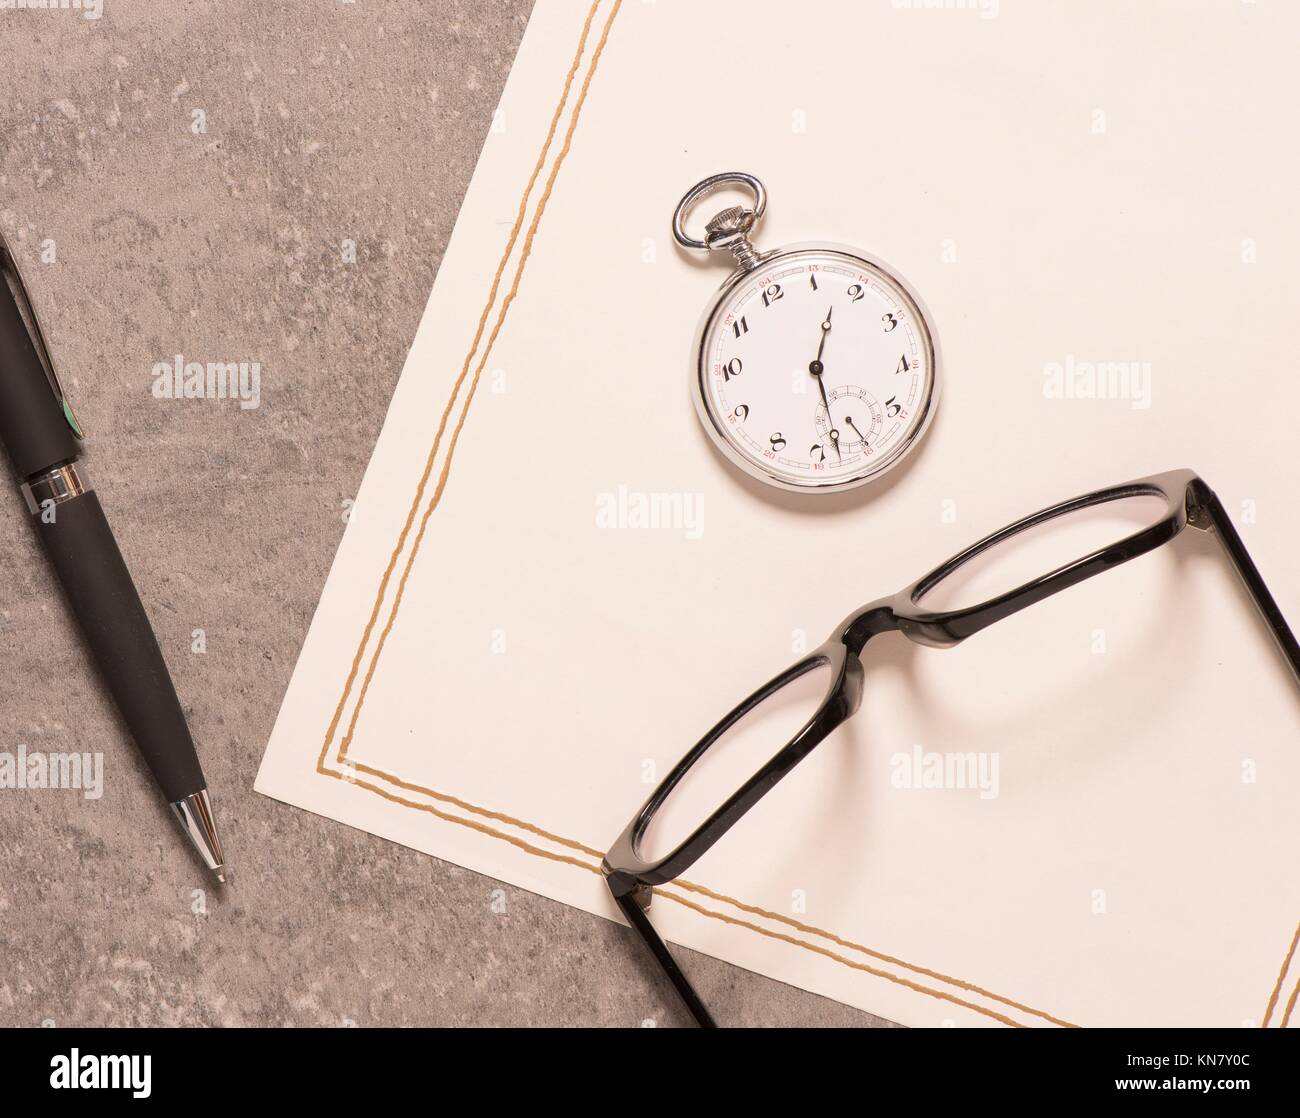 Letter paper, vintage pocket watch, glasses and pen. Concept of writing, correspondence and old fashioned communication. - Stock Image